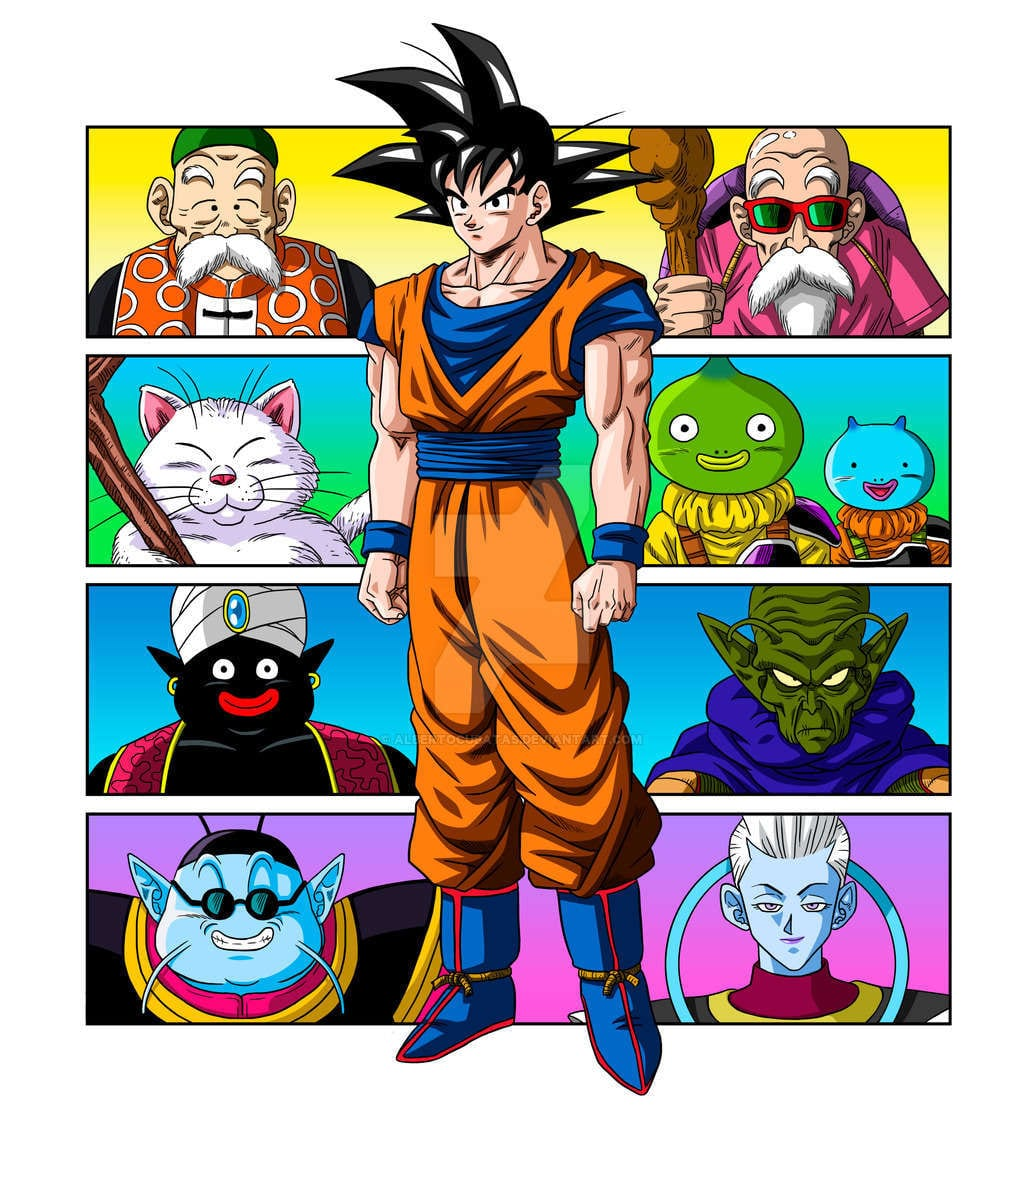 wp-content/uploads/2017/10/masters_of_goku__full_color__by_albertocubatas-d8yhsmj.jpg